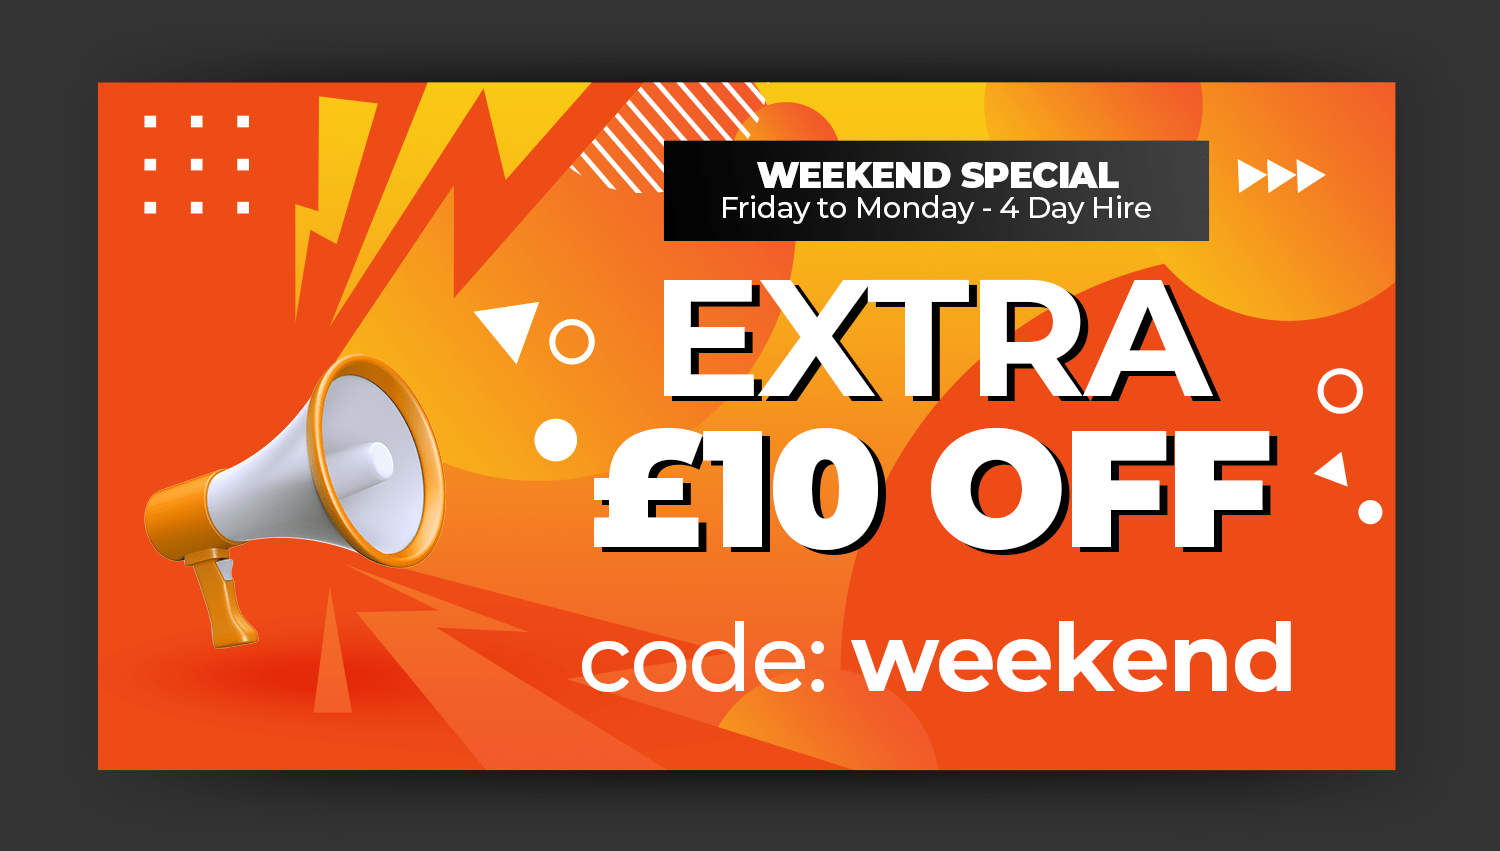 weekened-extra-10-off